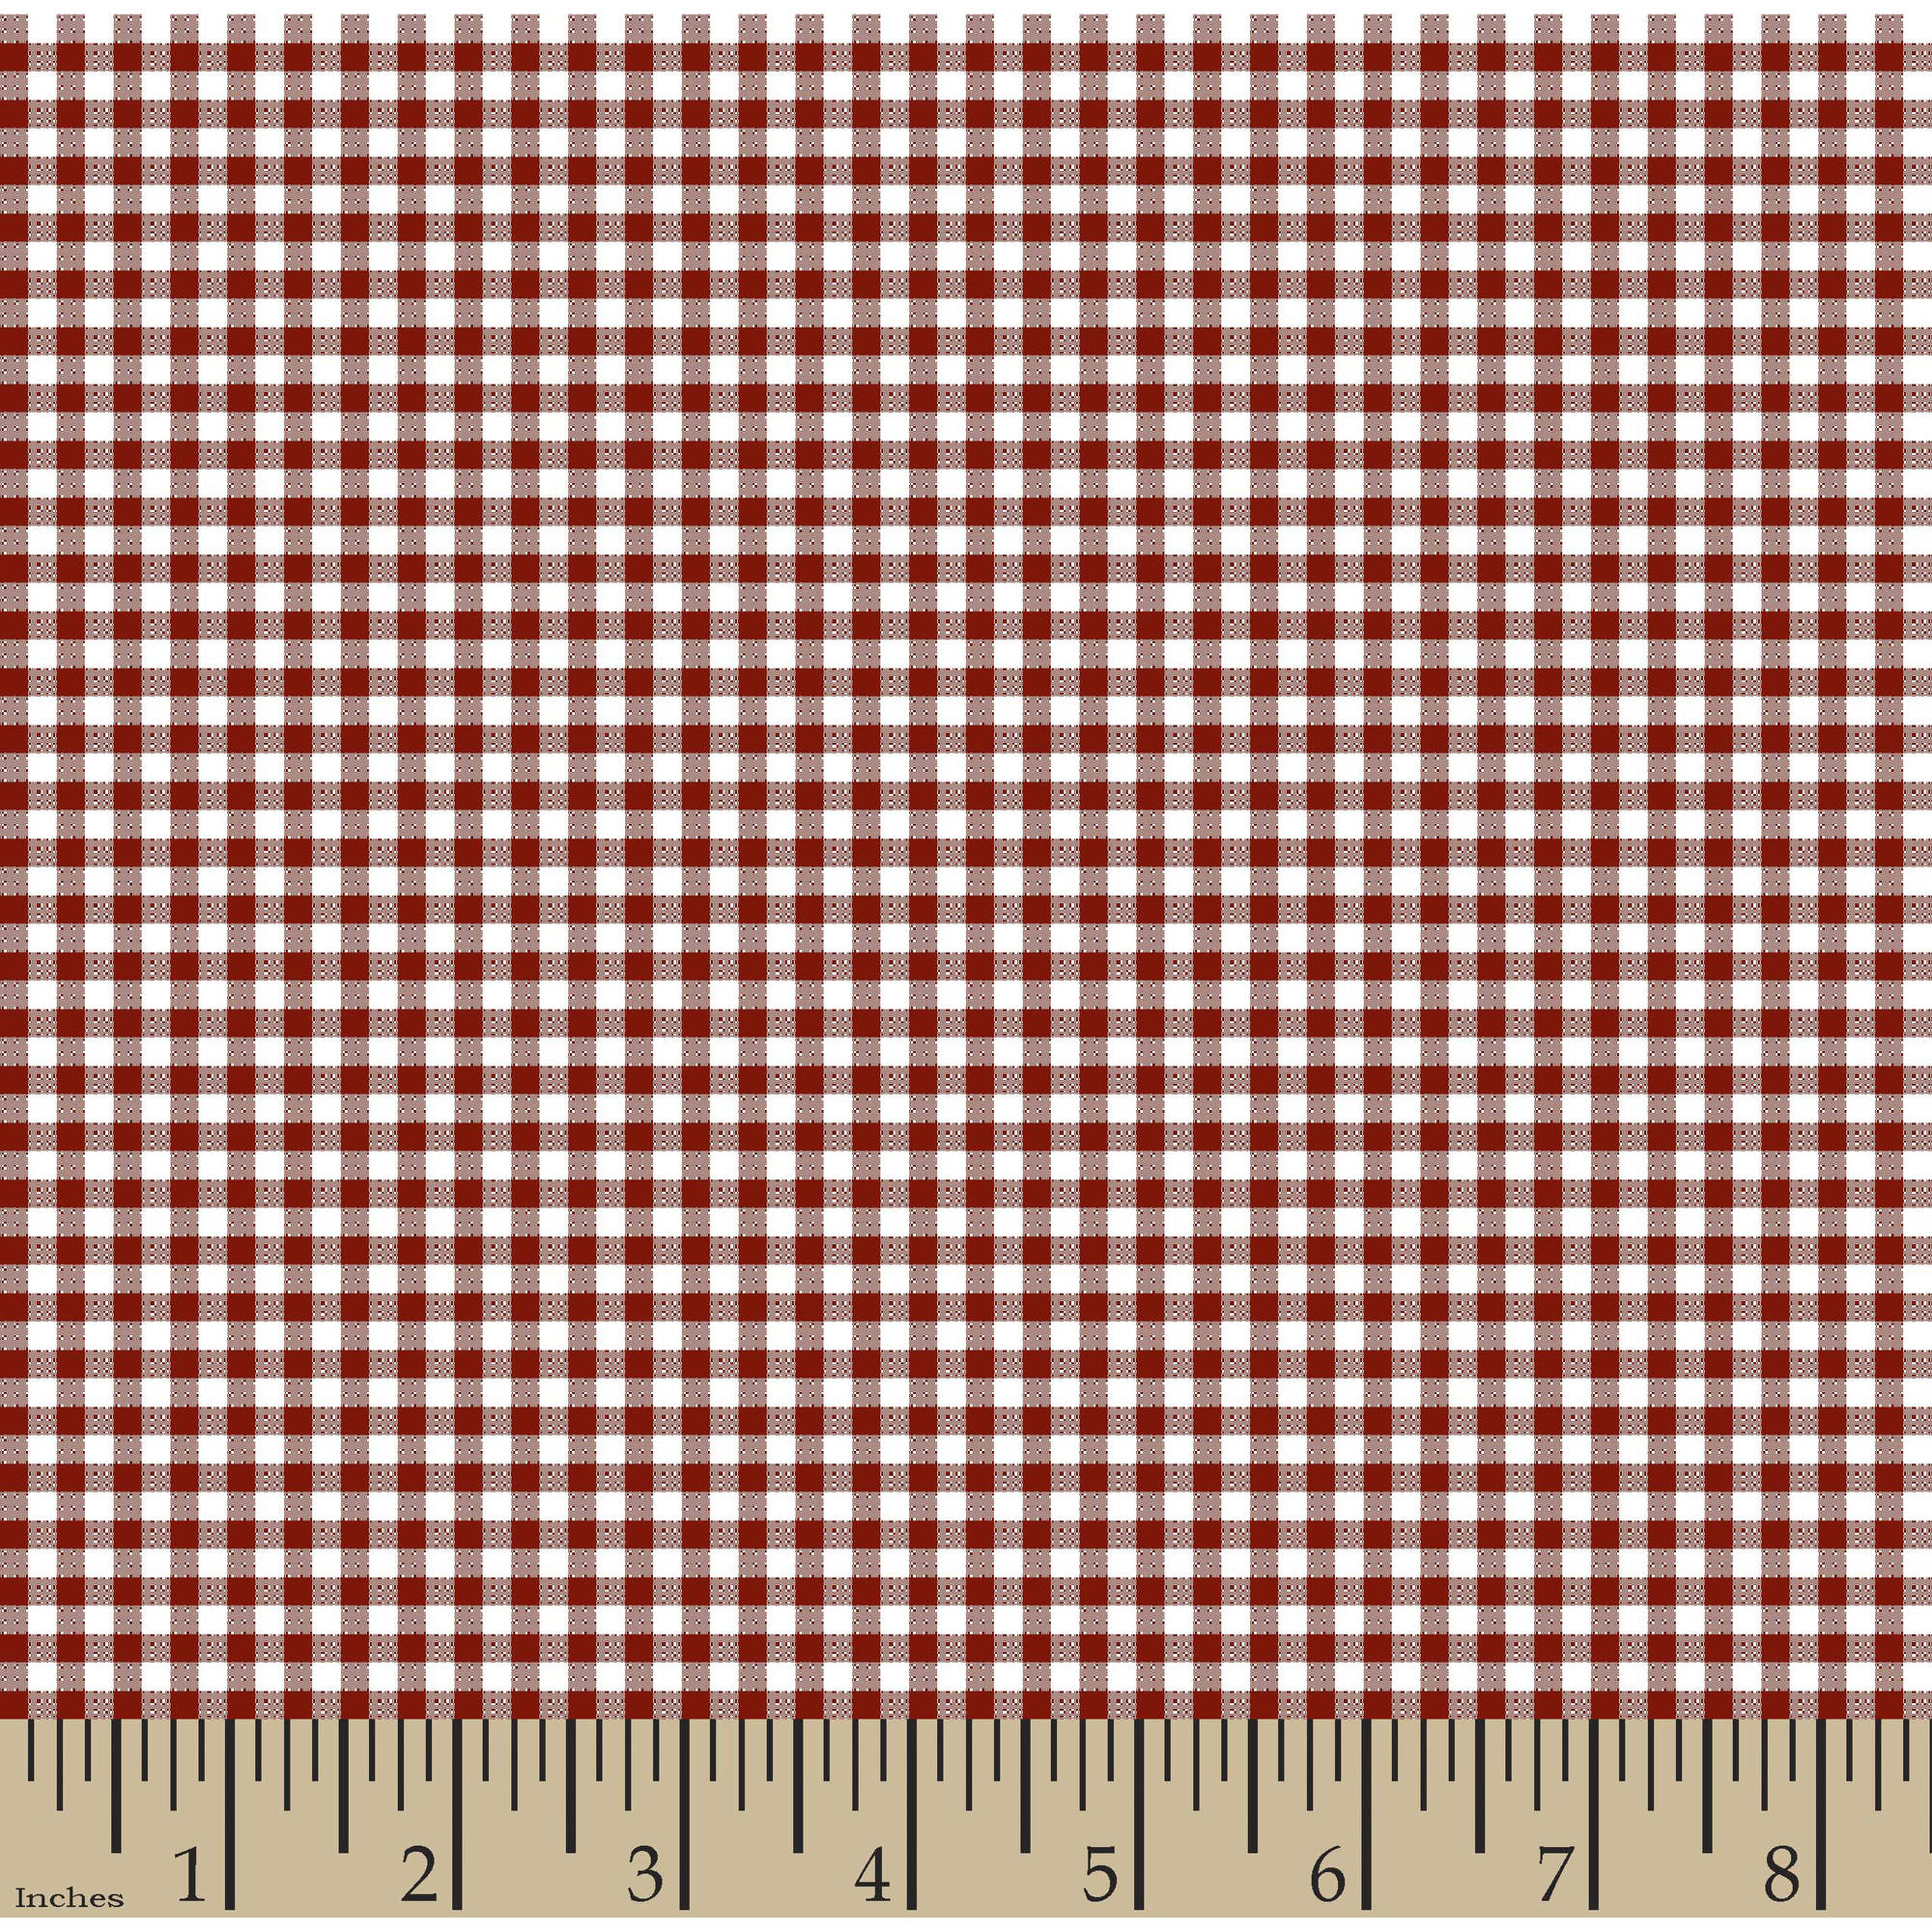 "Woven Gingham Check 1/8"" 65/35 Poly/Cotton Fabric by the Yard, Poppy Red, 44/45"" Width"